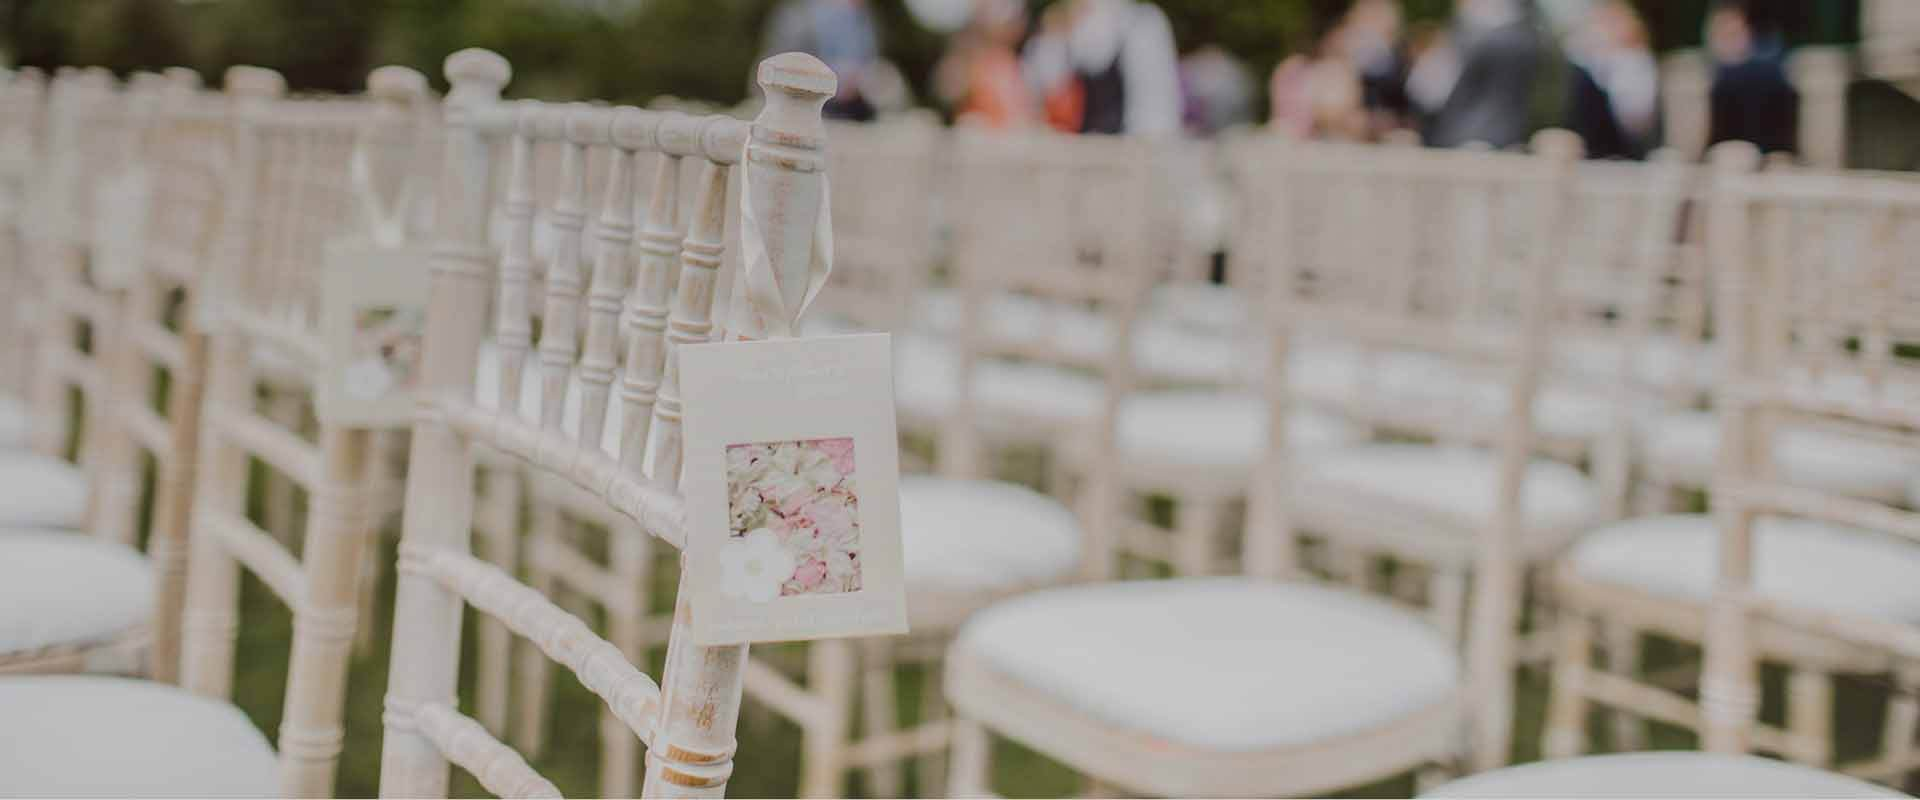 Allure Party Rentals Rent Chairs Tables Tents Linens In South Fl